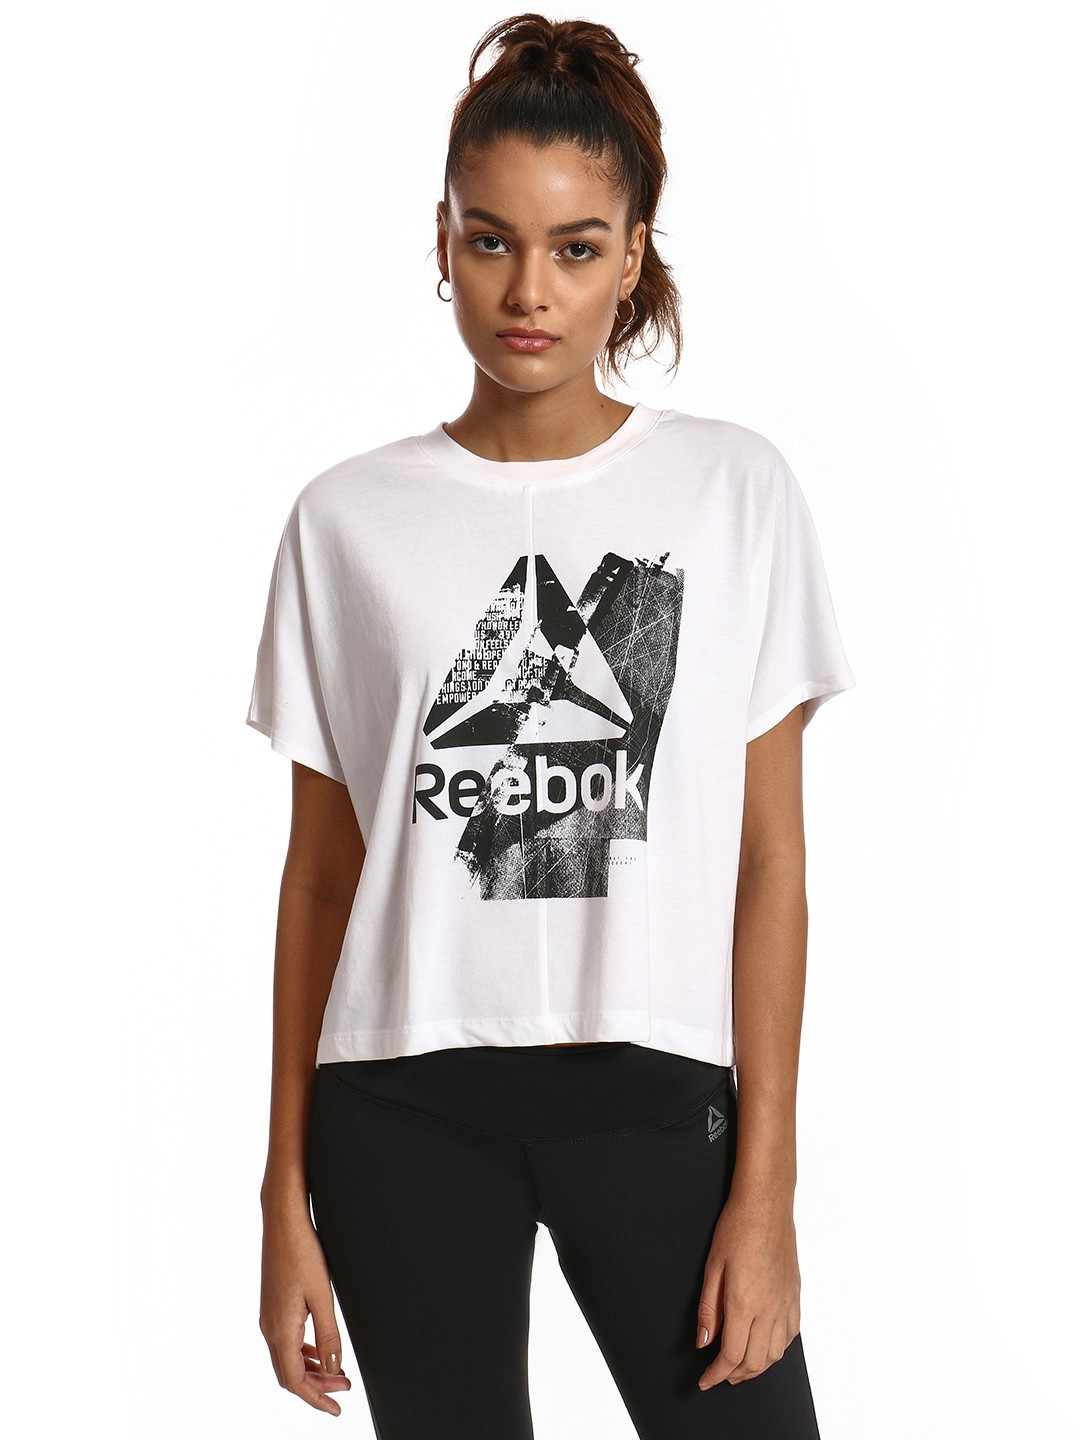 REEBOK White Graphic Print T-Shirt 1